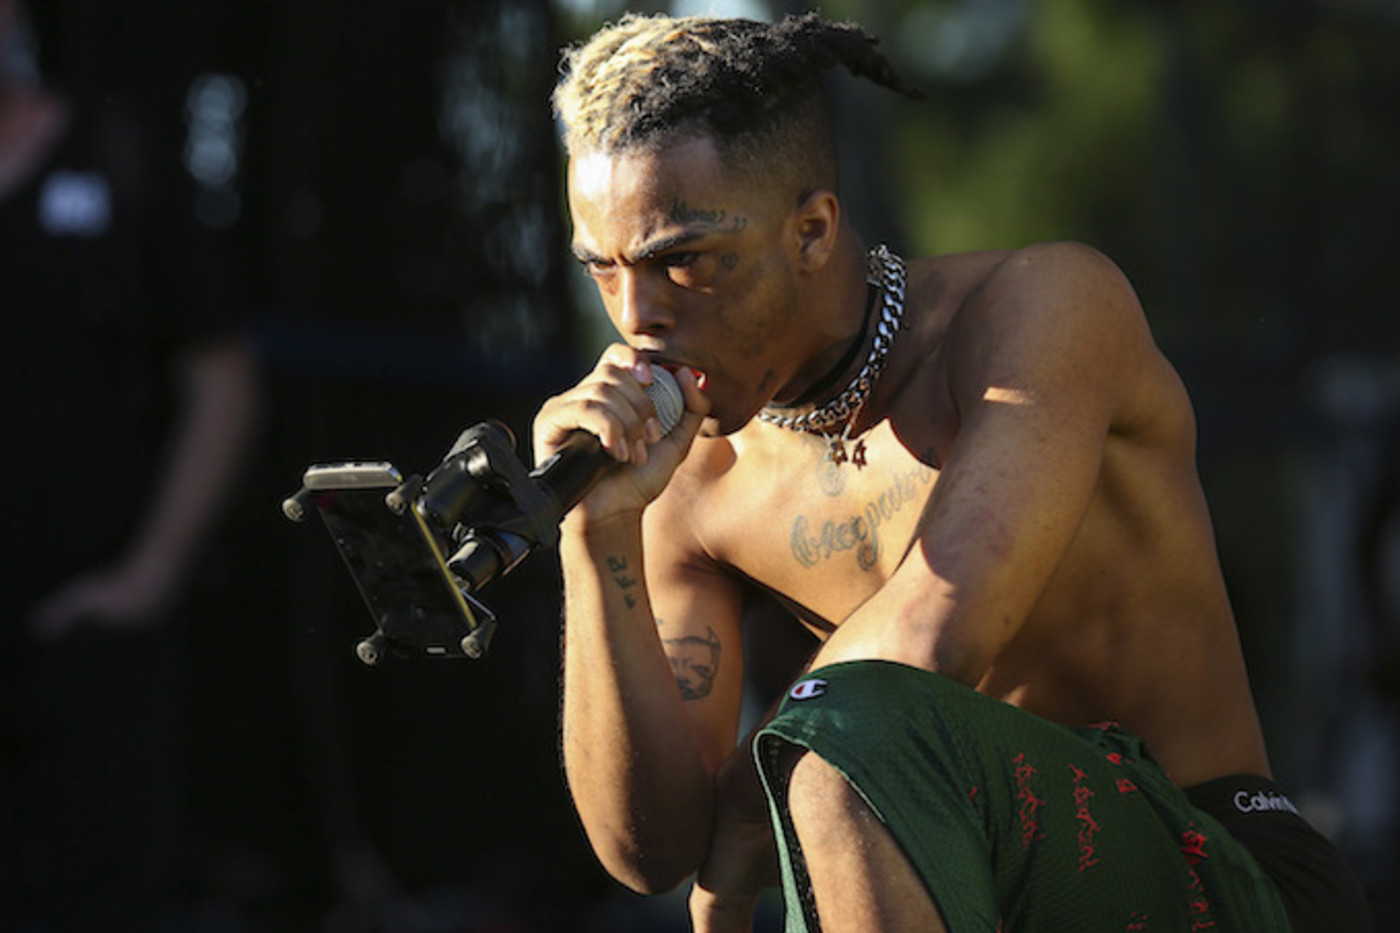 XXXTentacion performing in Miami